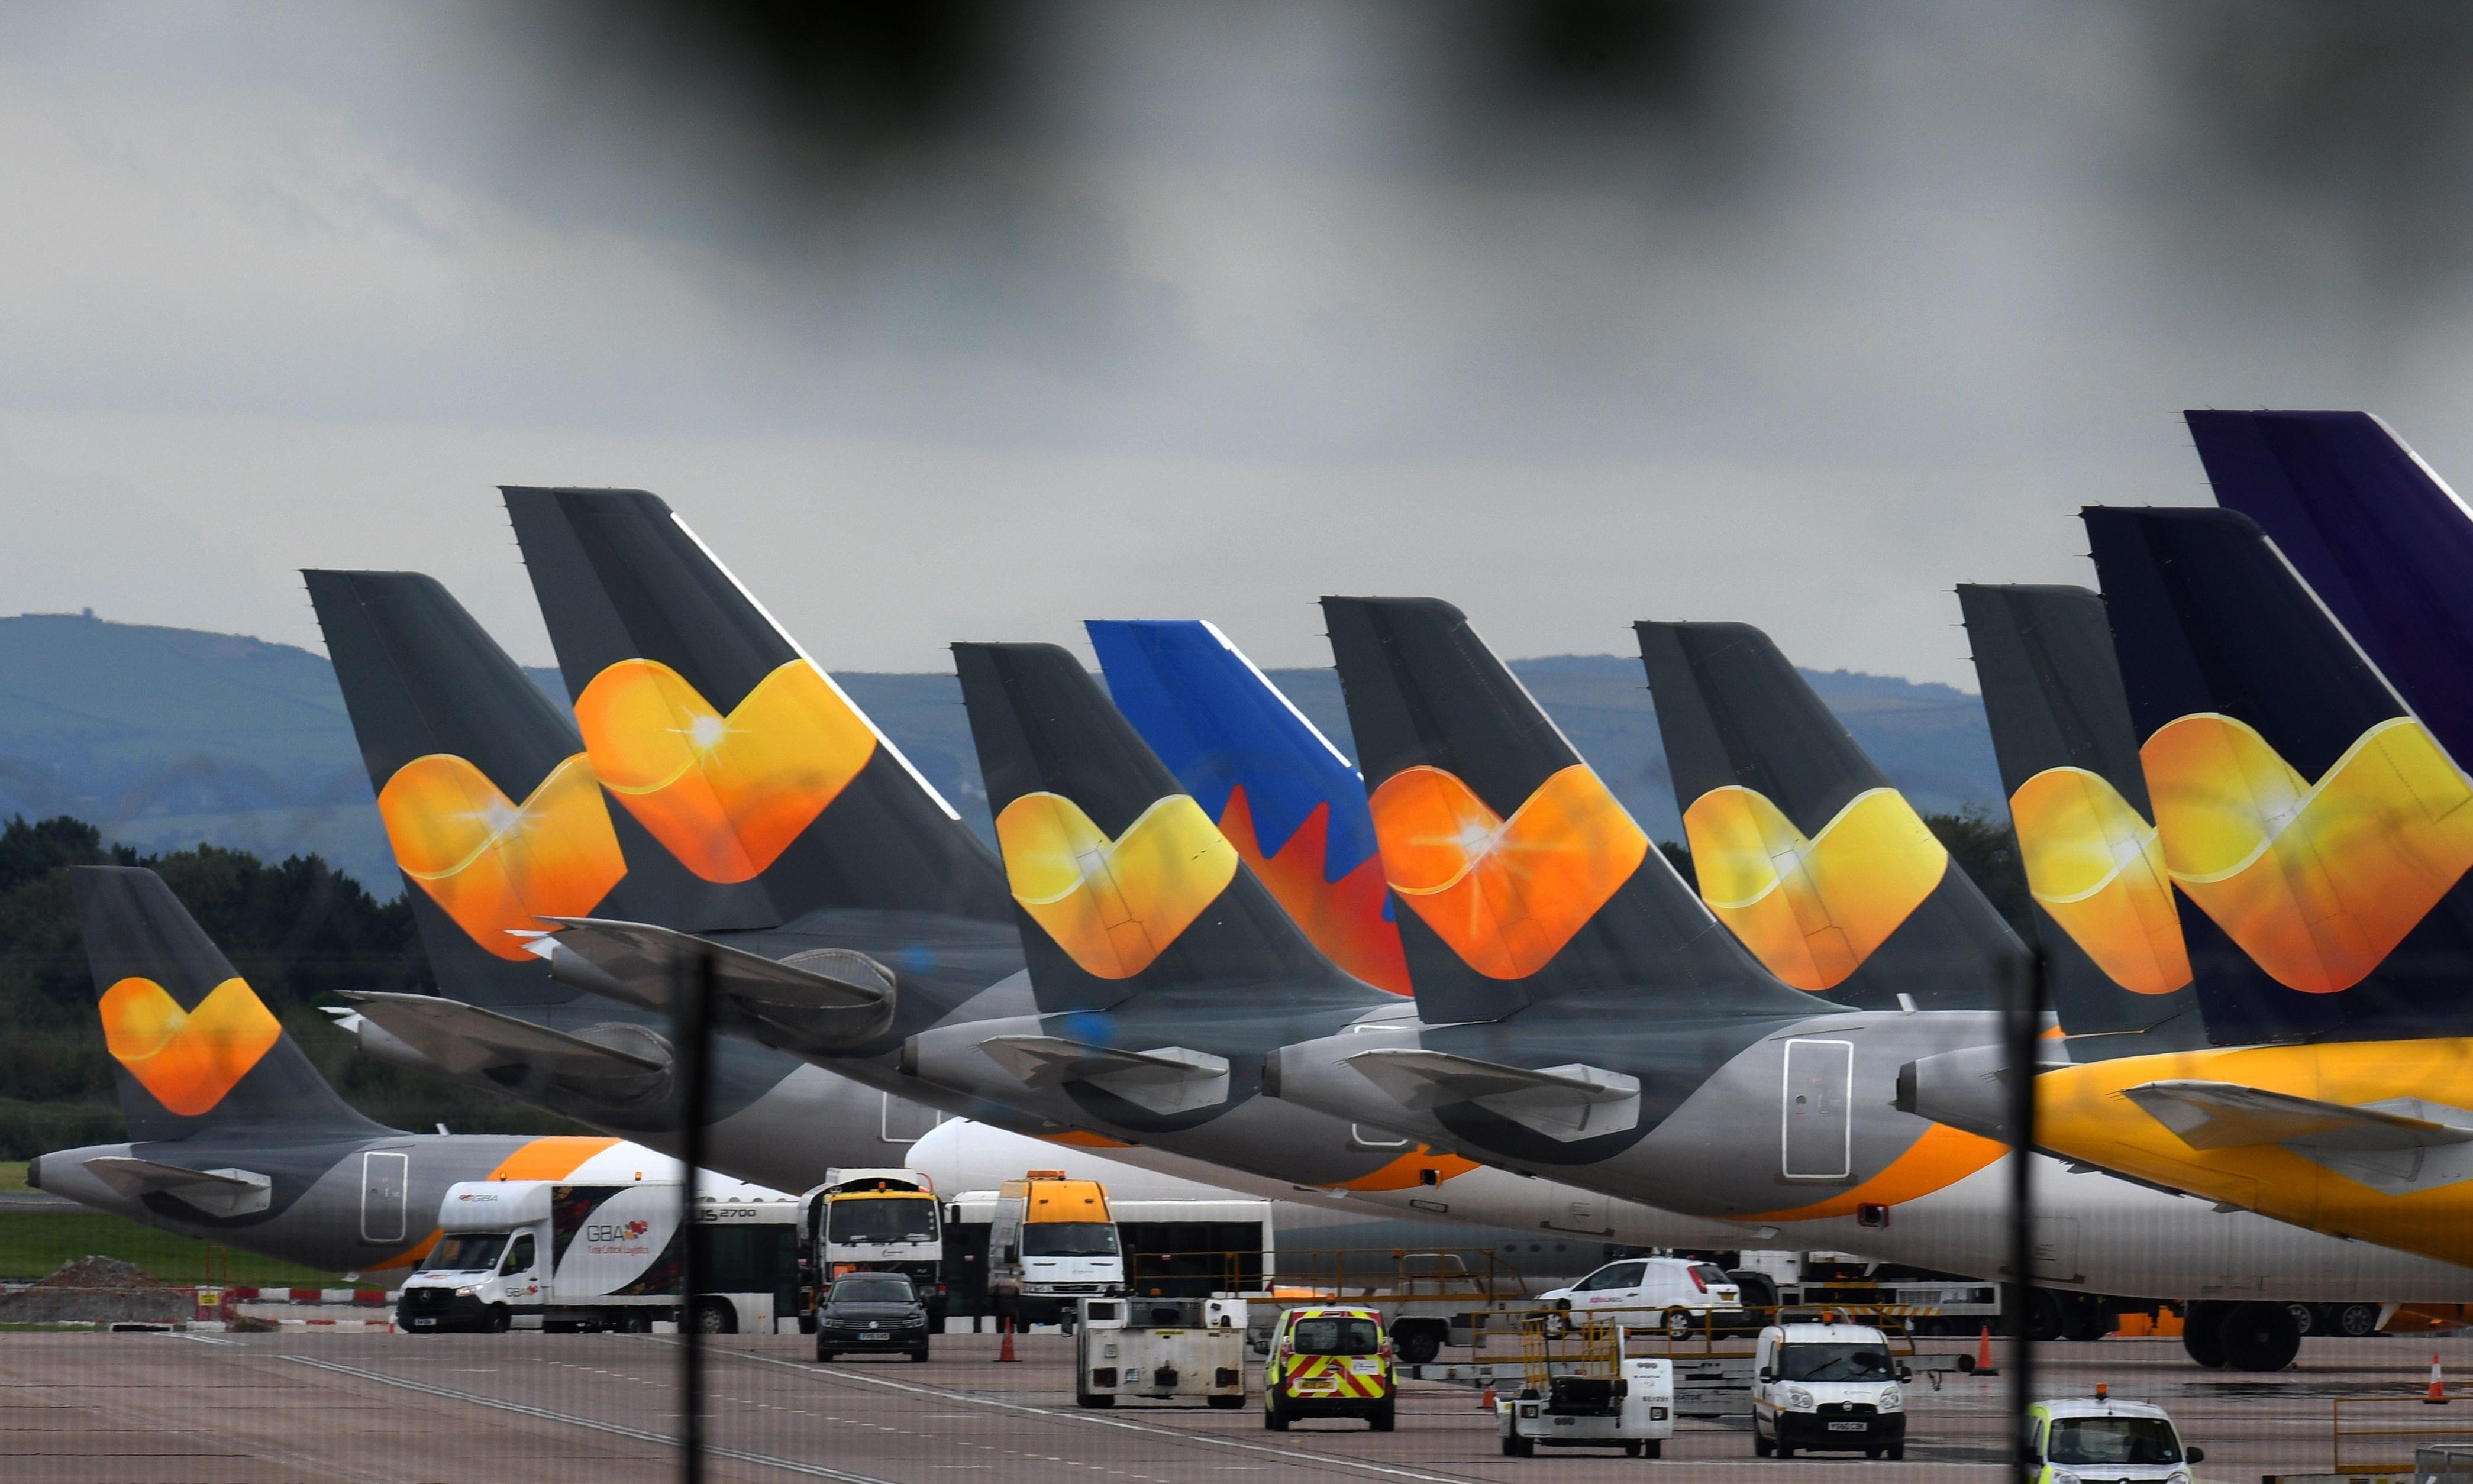 Thomas Cook was brought down by incompetence, not boardroom greed